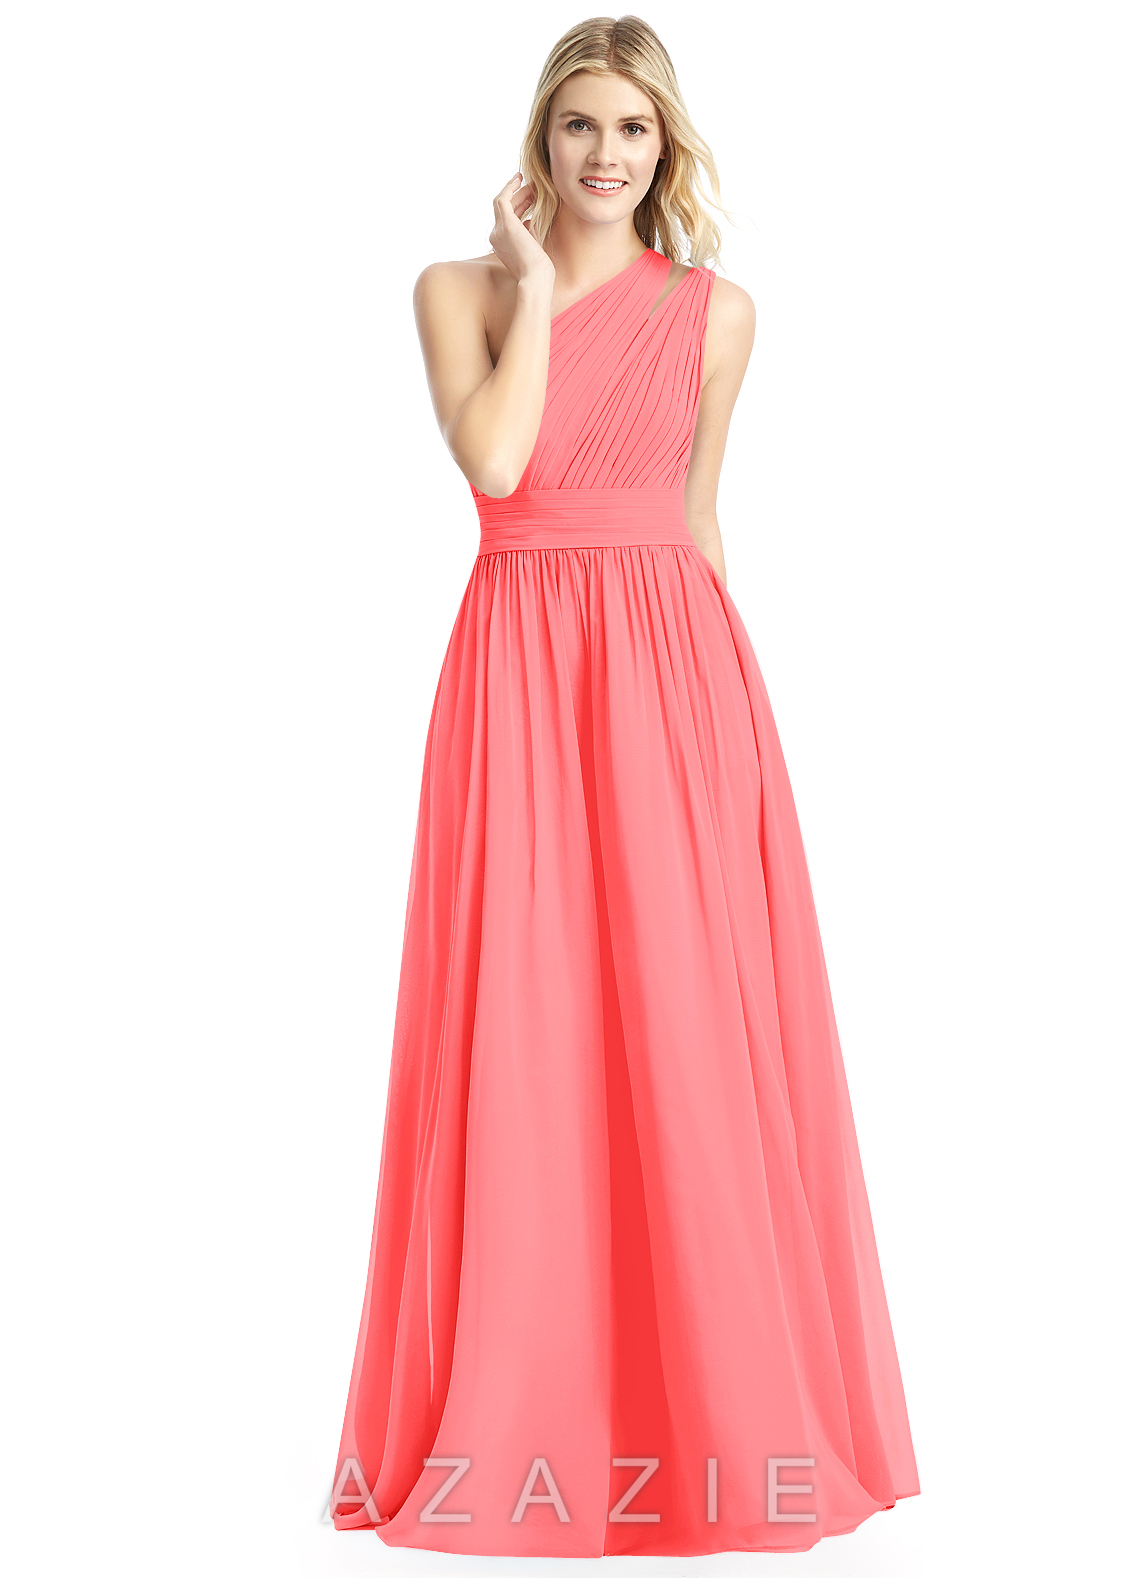 Azazie molly bridesmaid dress azazie color watermelon ombrellifo Images